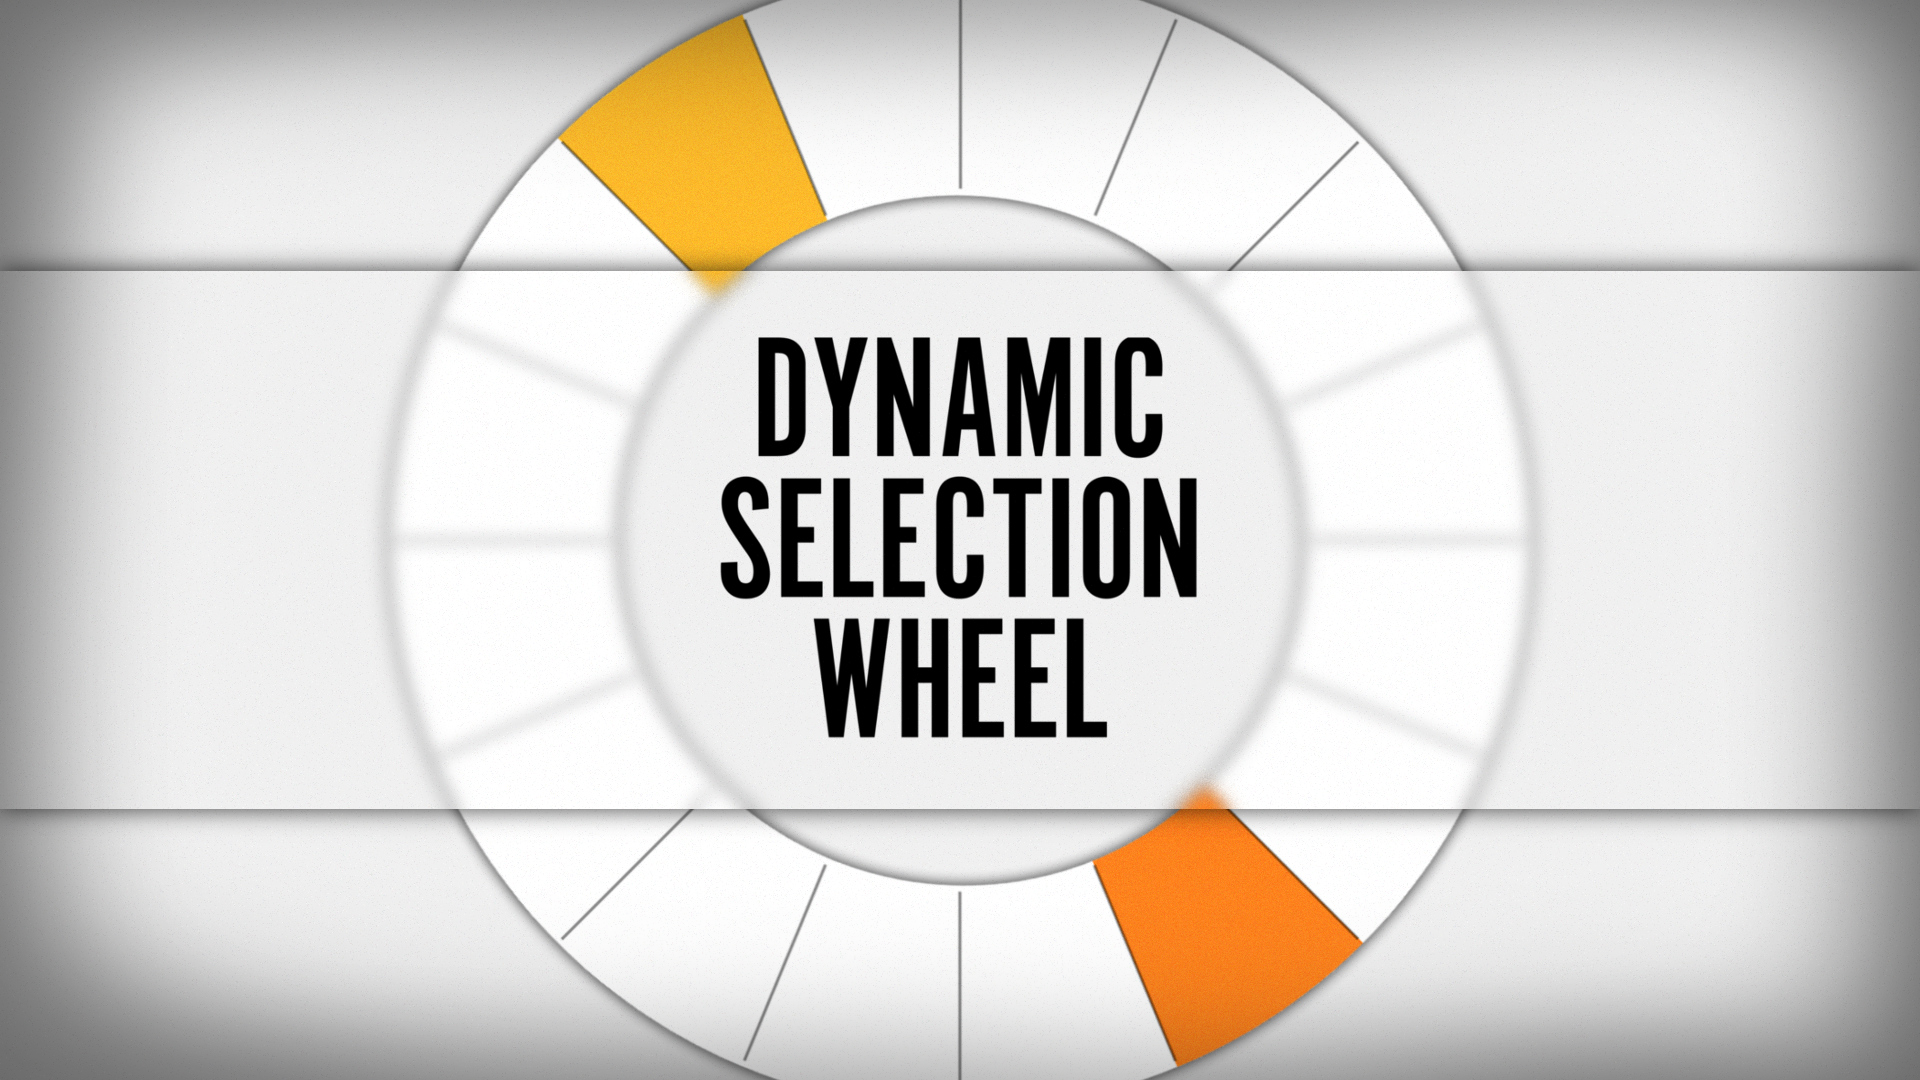 Dynamic Selection Wheel by Chase Comerer